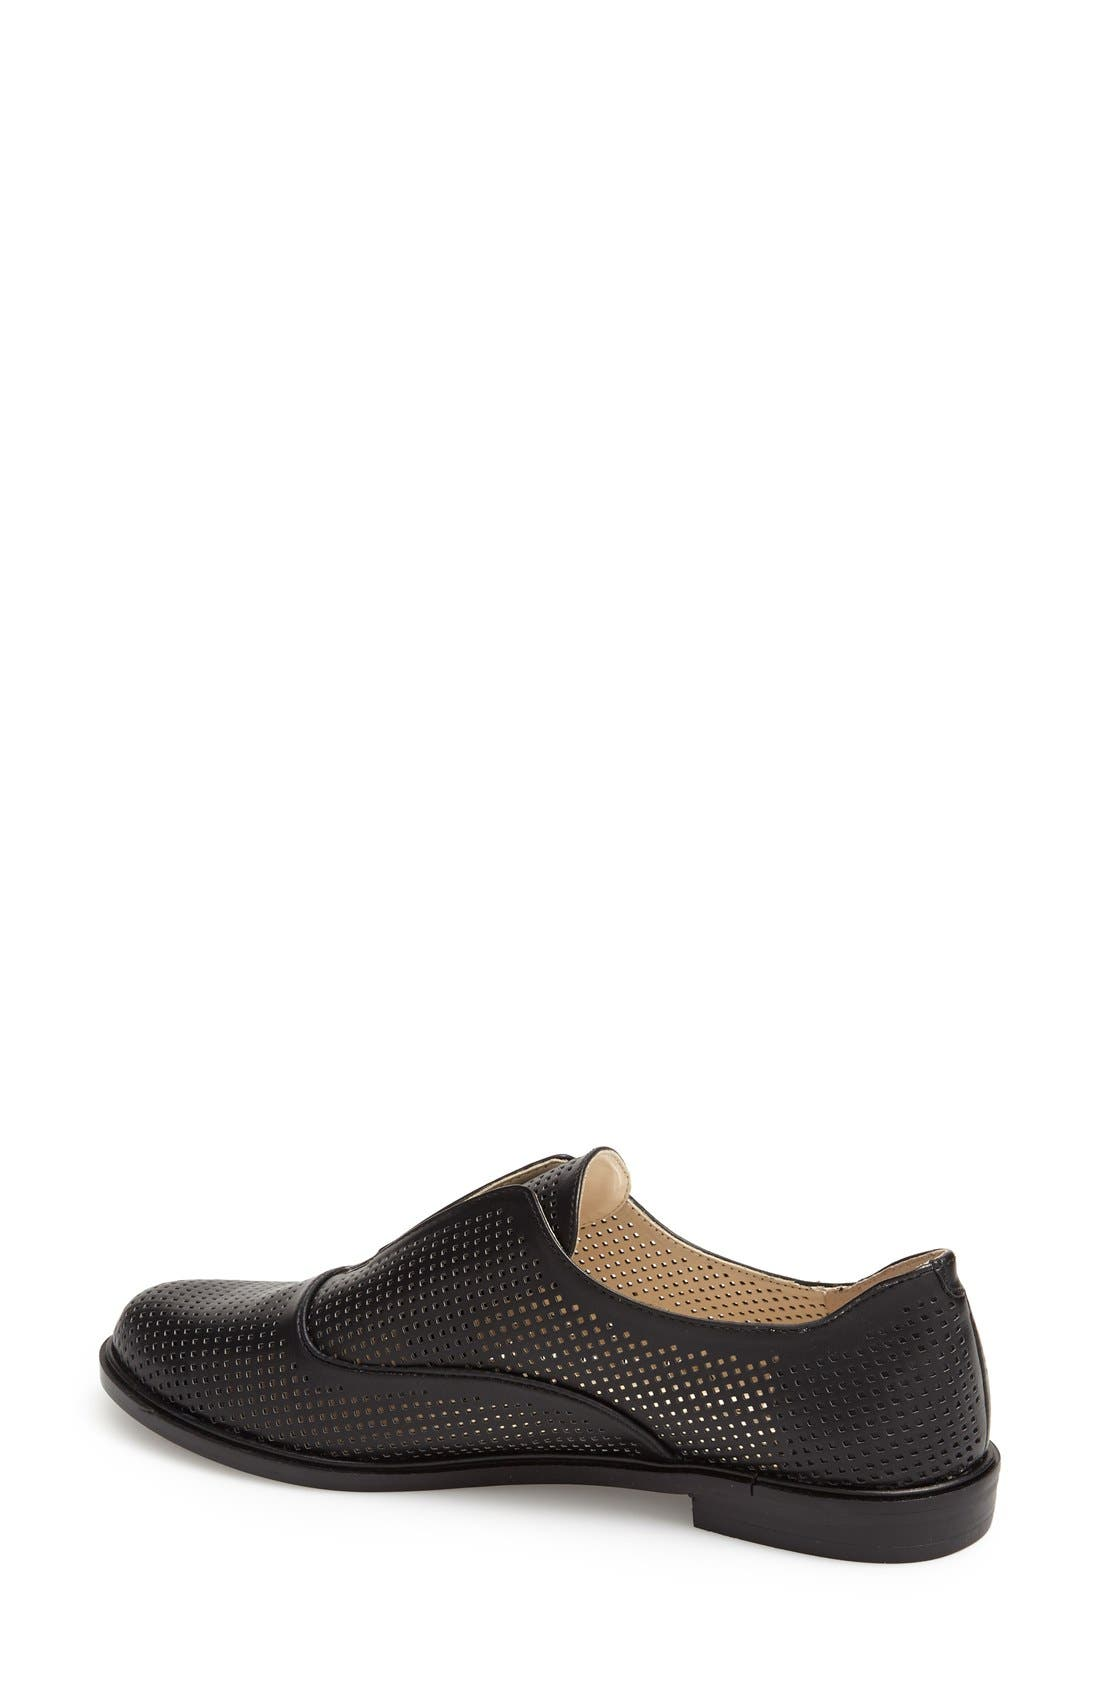 BCBGENERATION,                             'Brisk B' Perforated Oxford,                             Alternate thumbnail 2, color,                             001